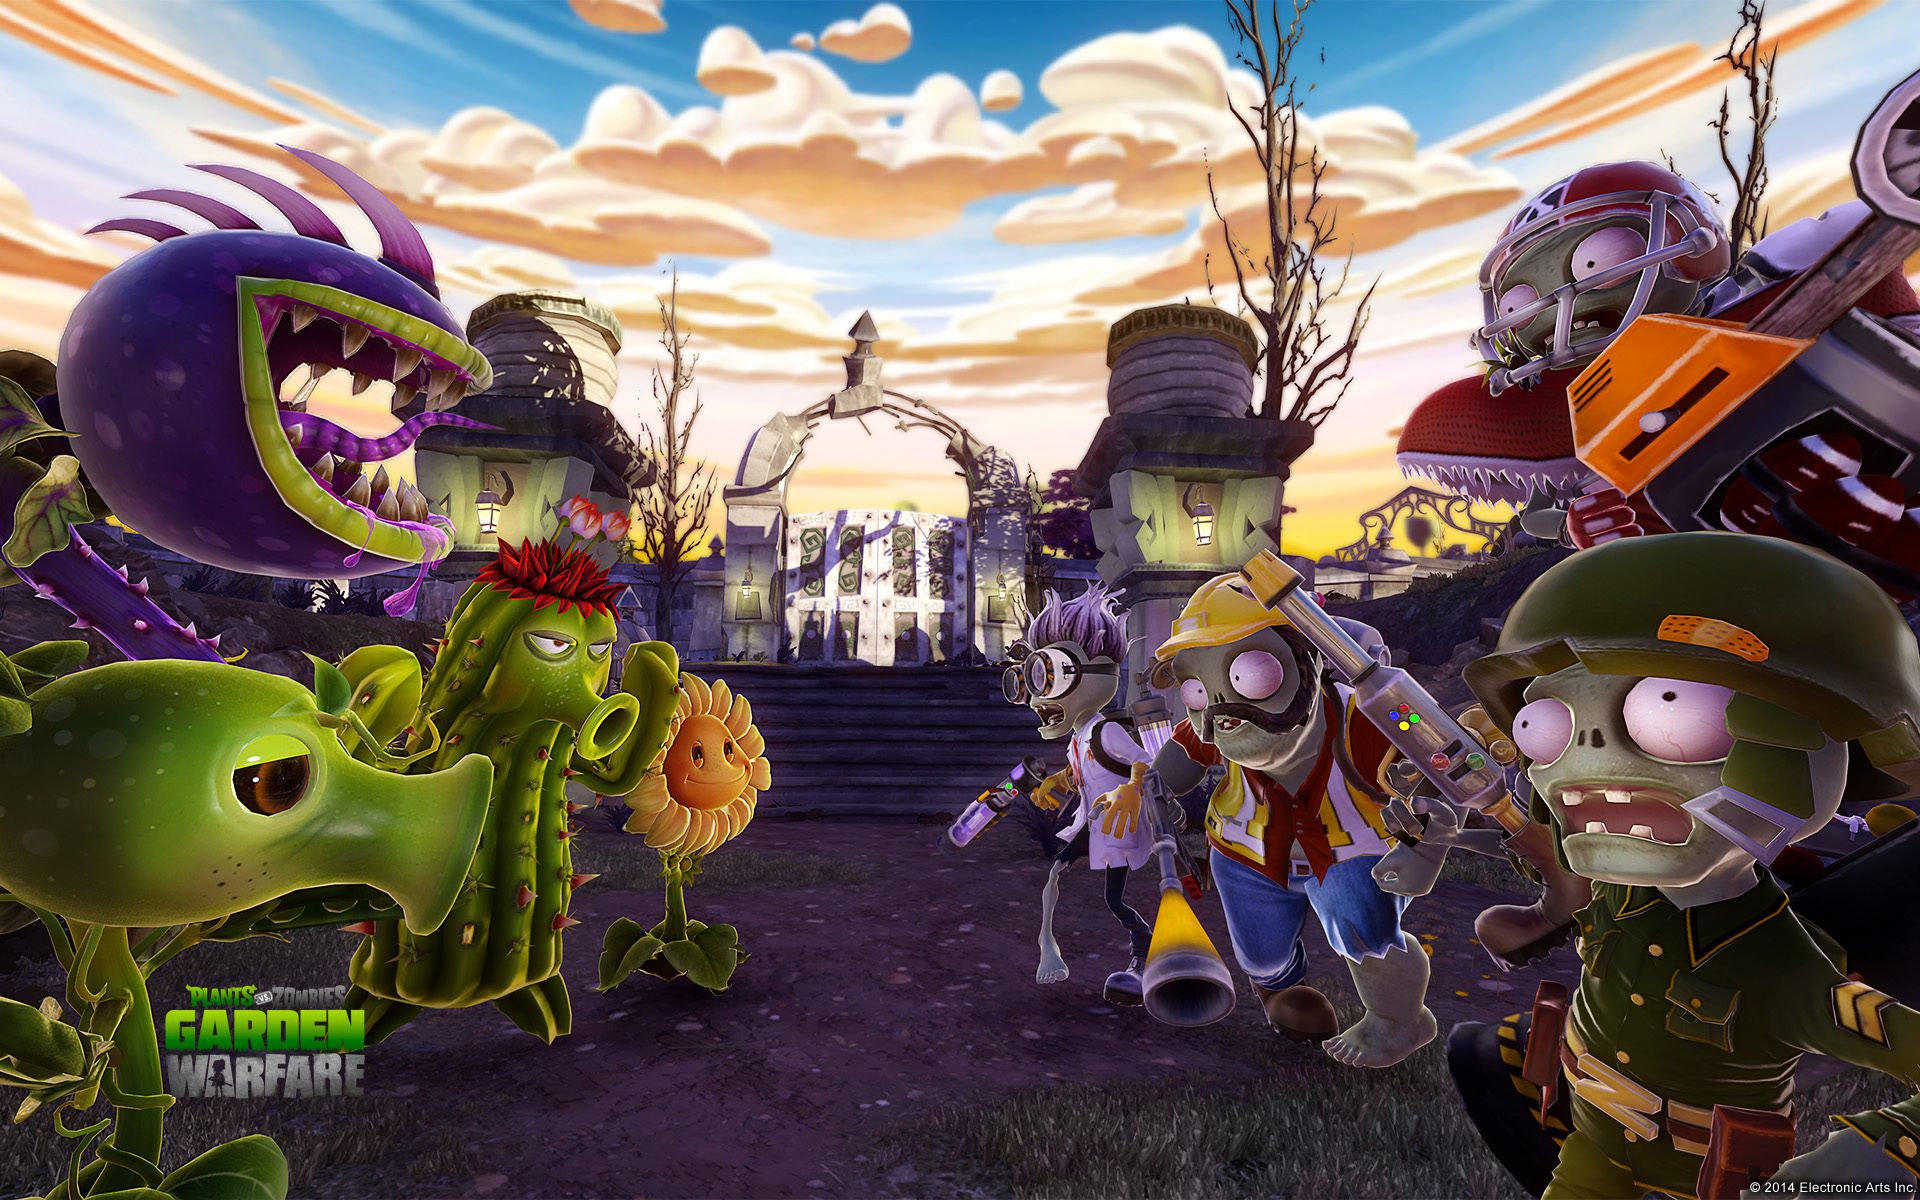 Plants Vs Zombies Garden Warfare Wallpaper 48563 With Images